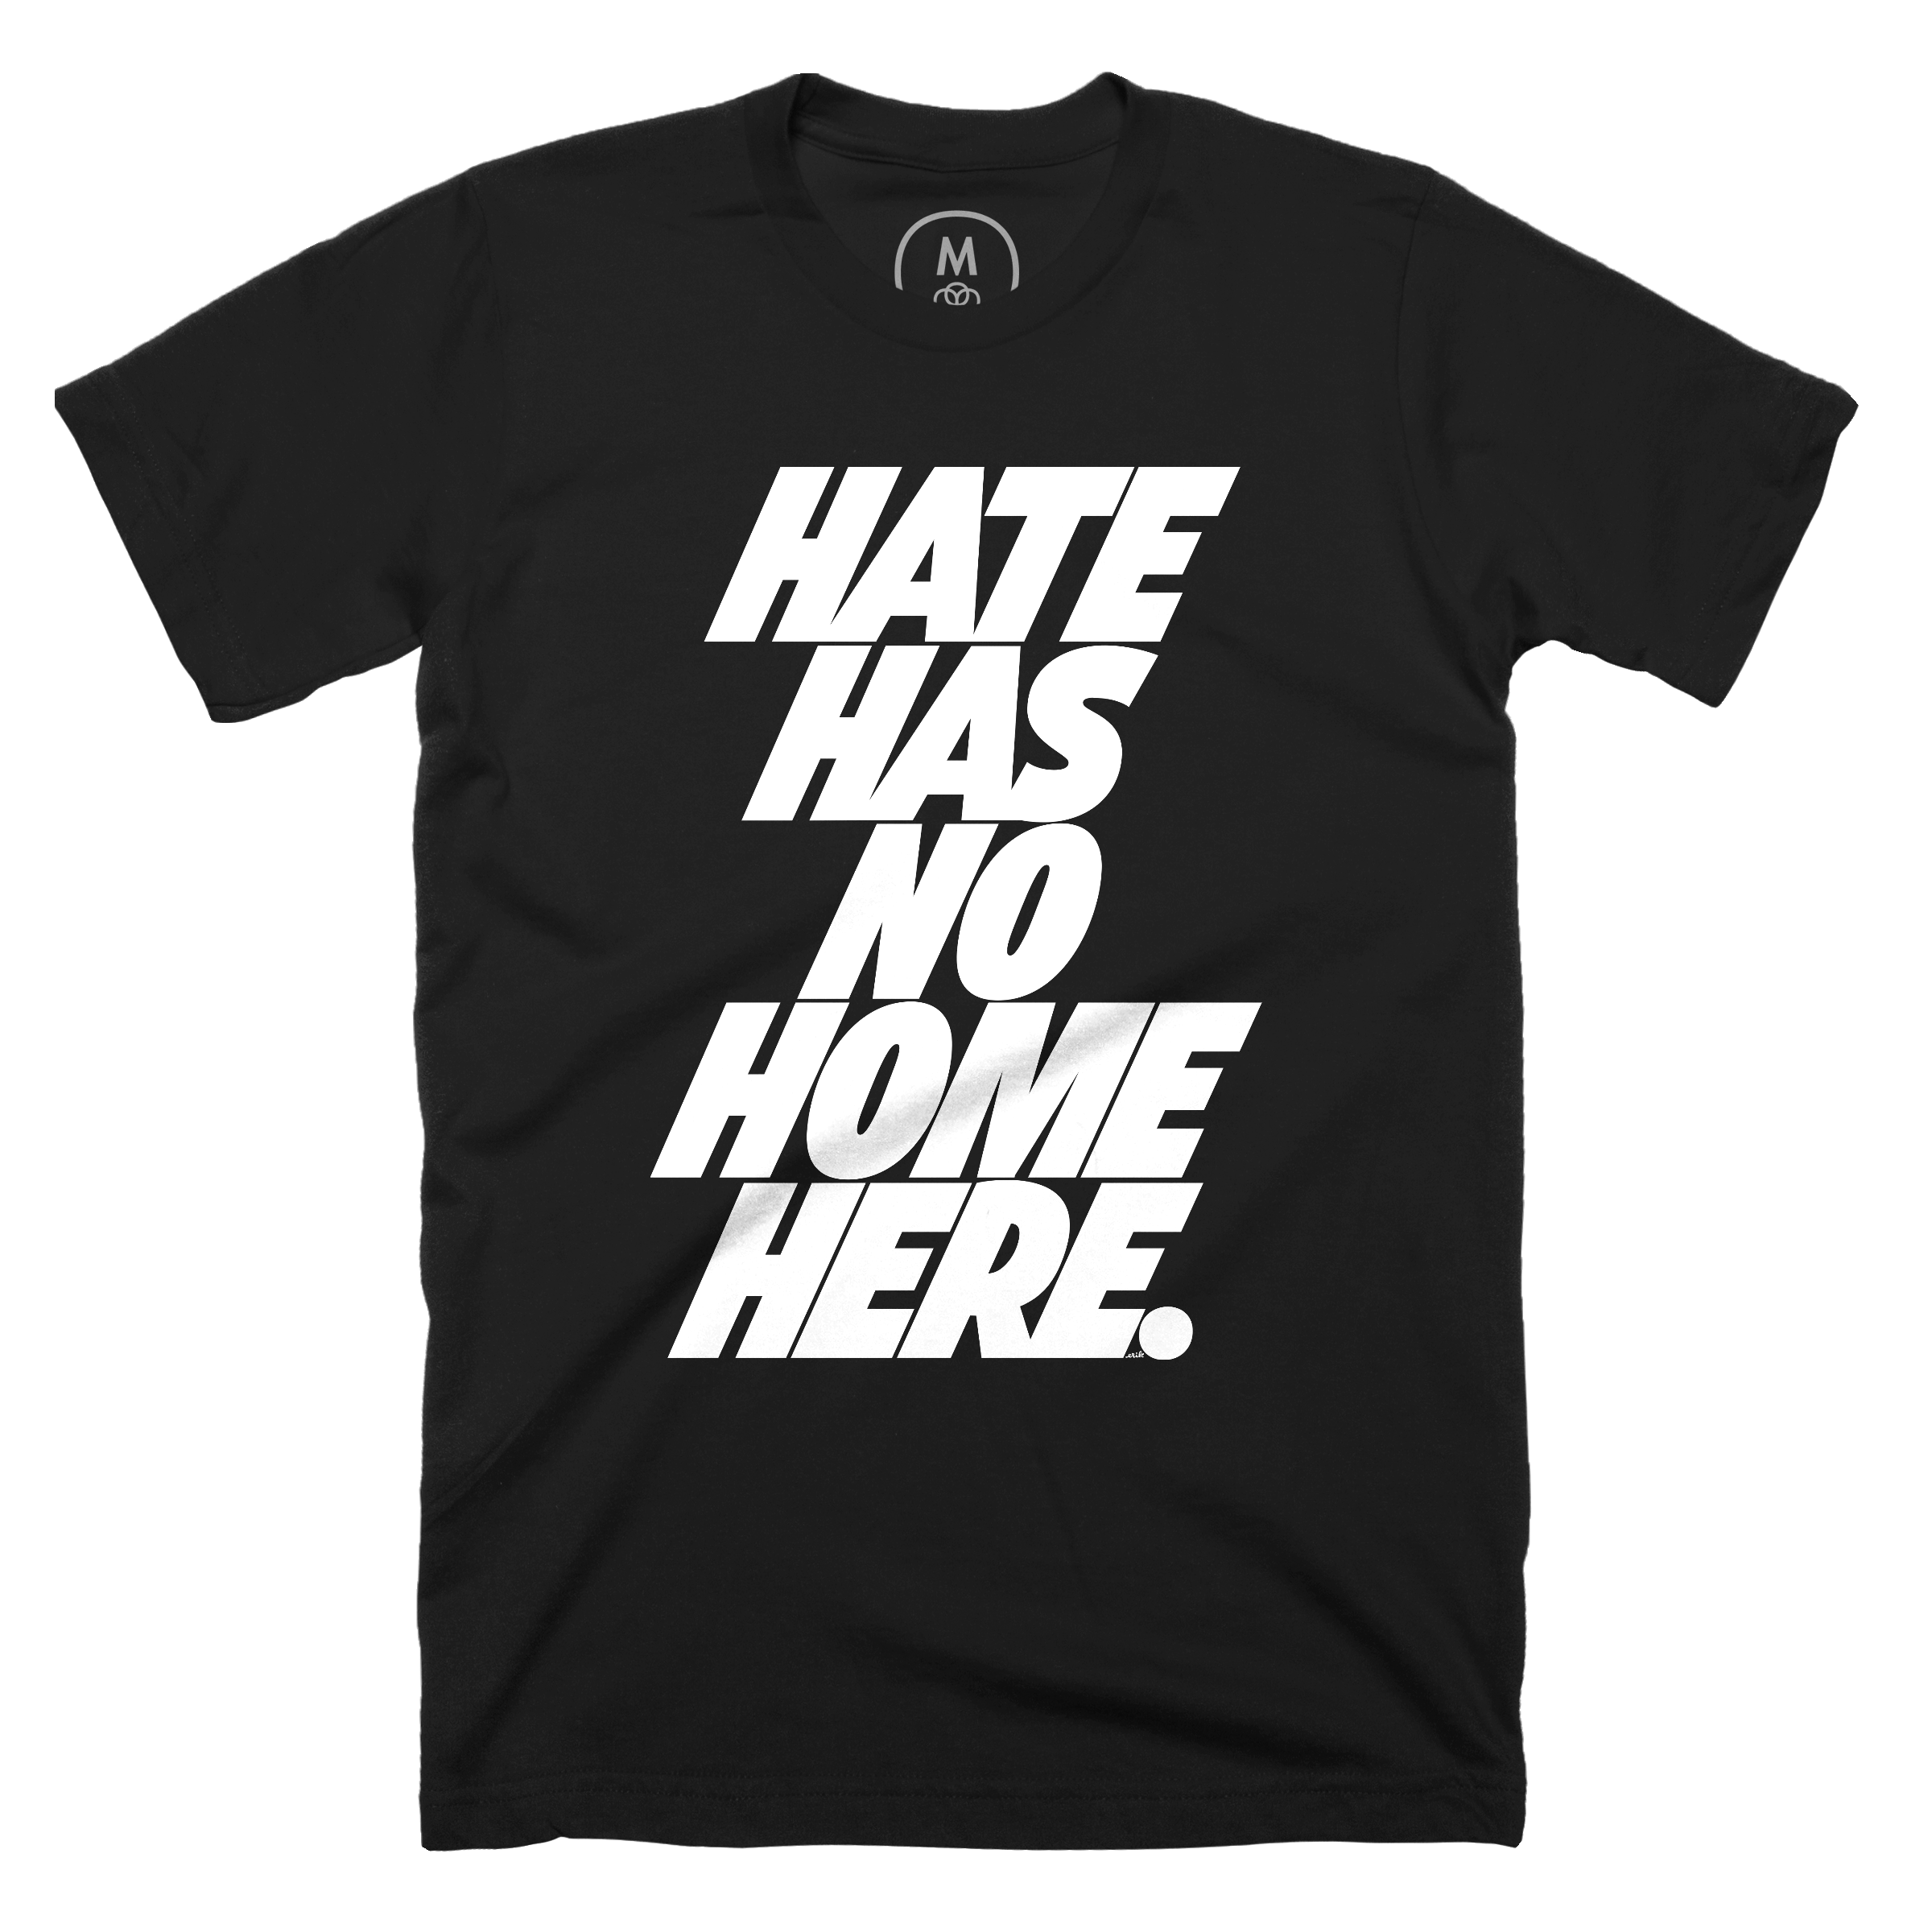 Hate Has No Home Here.